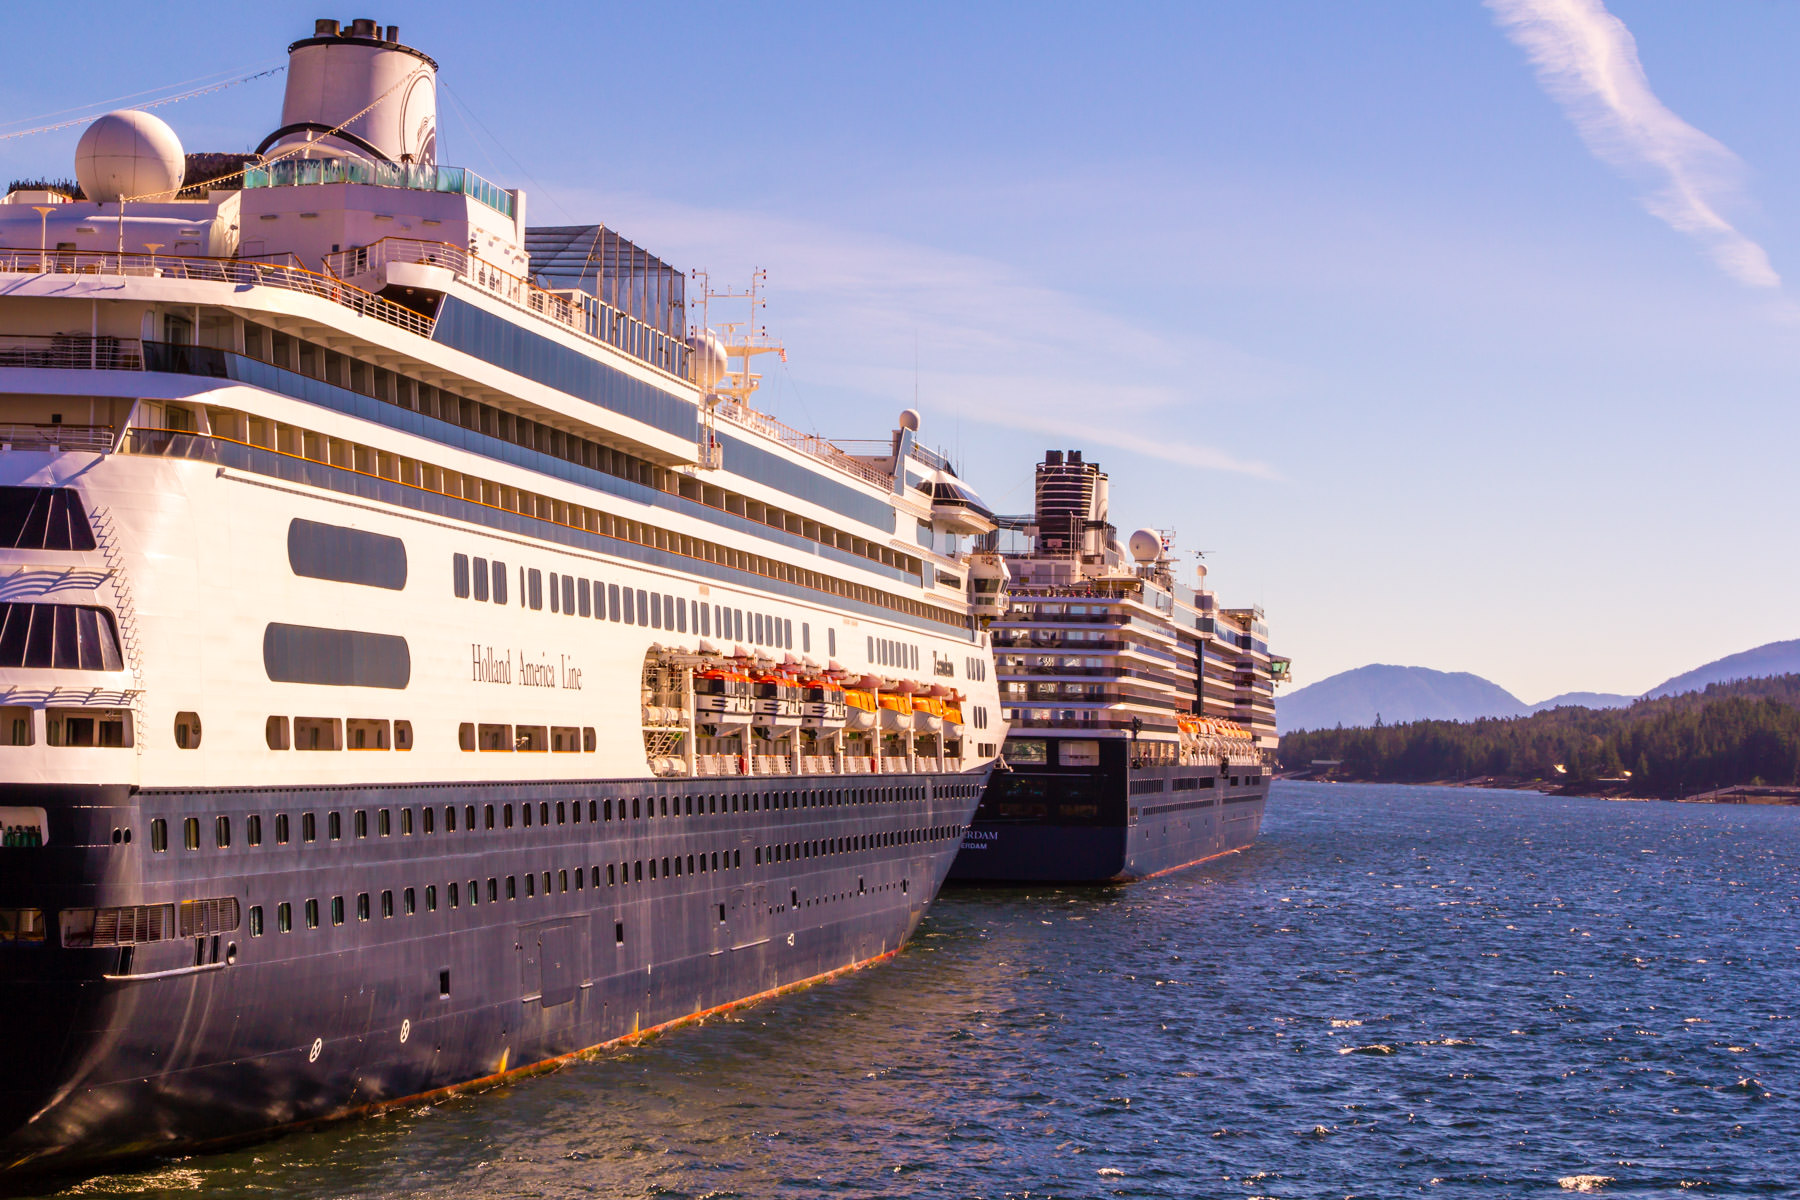 The Holland America Lines cruise ships MS Zaandam and MS Oosterdam, docked in Ketchikan, Alaska.